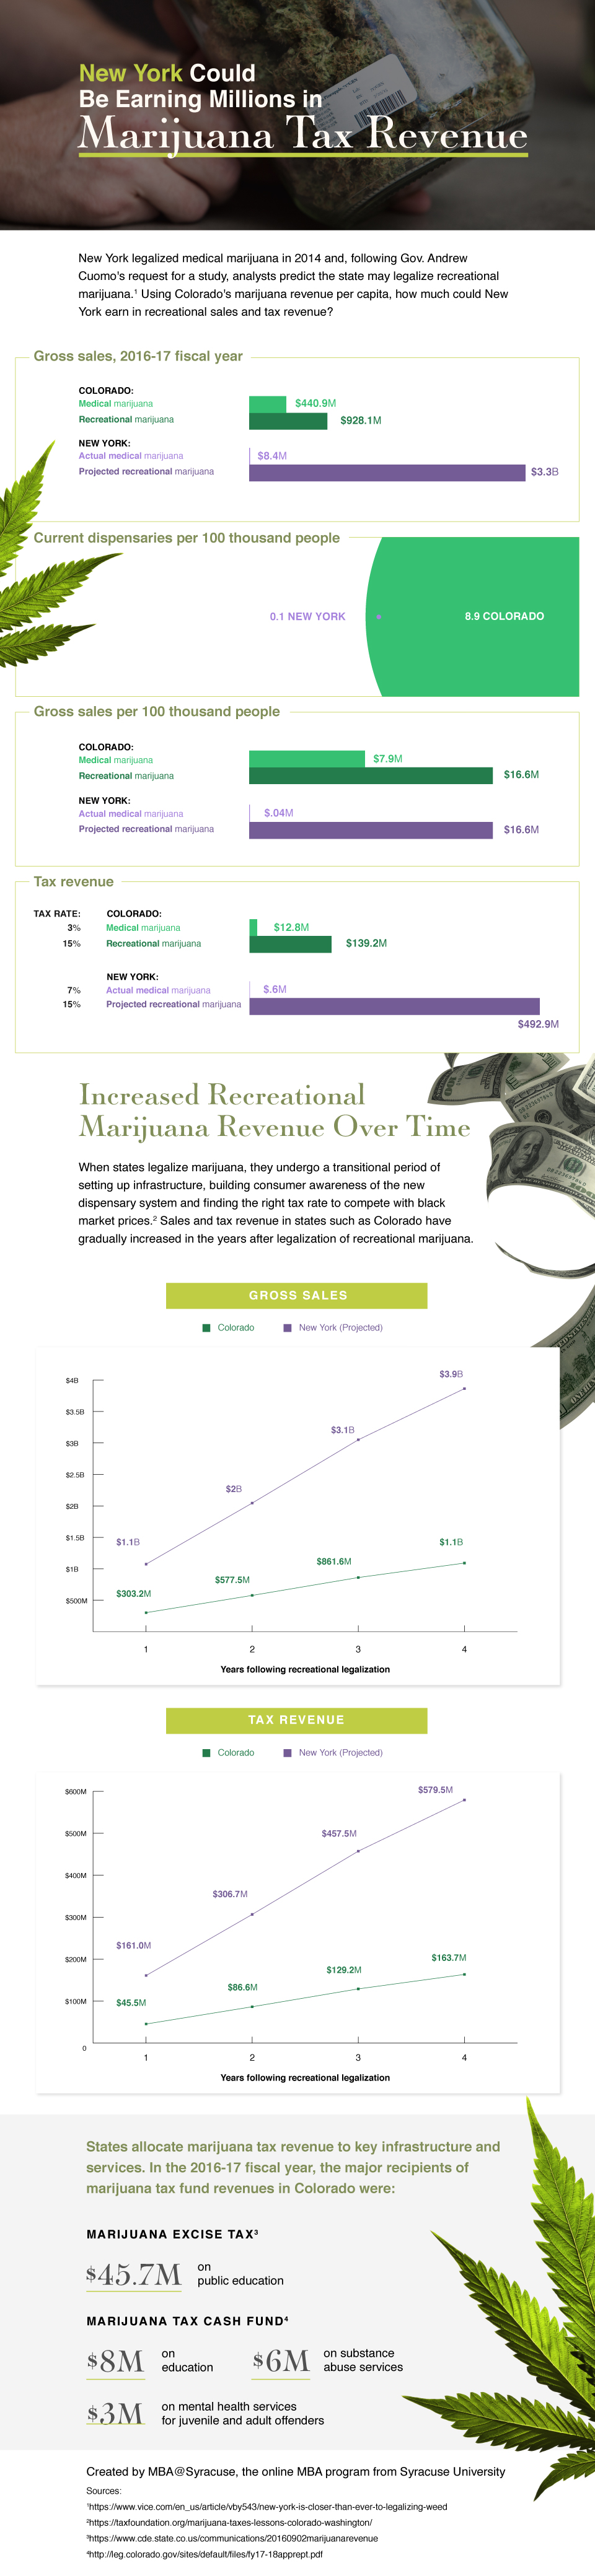 Data visualizations showing how New York could be earning millions in marijuana tax revenue.